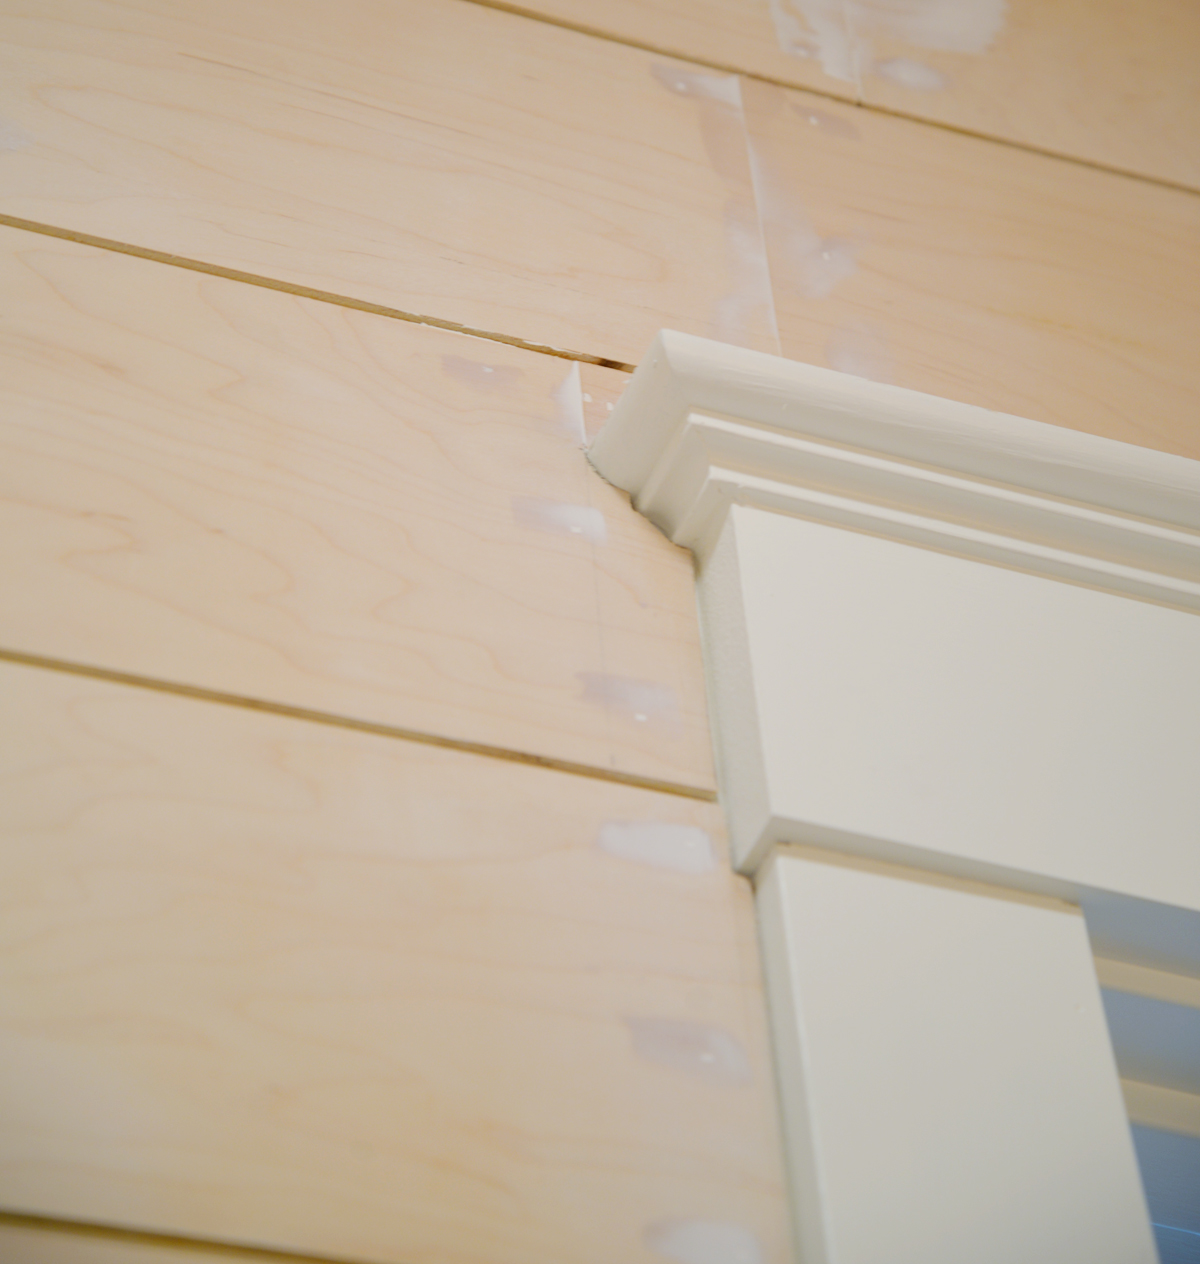 how to shiplap around doors, how to install a shiplap wall, cost of shiplap, shiplap around windows